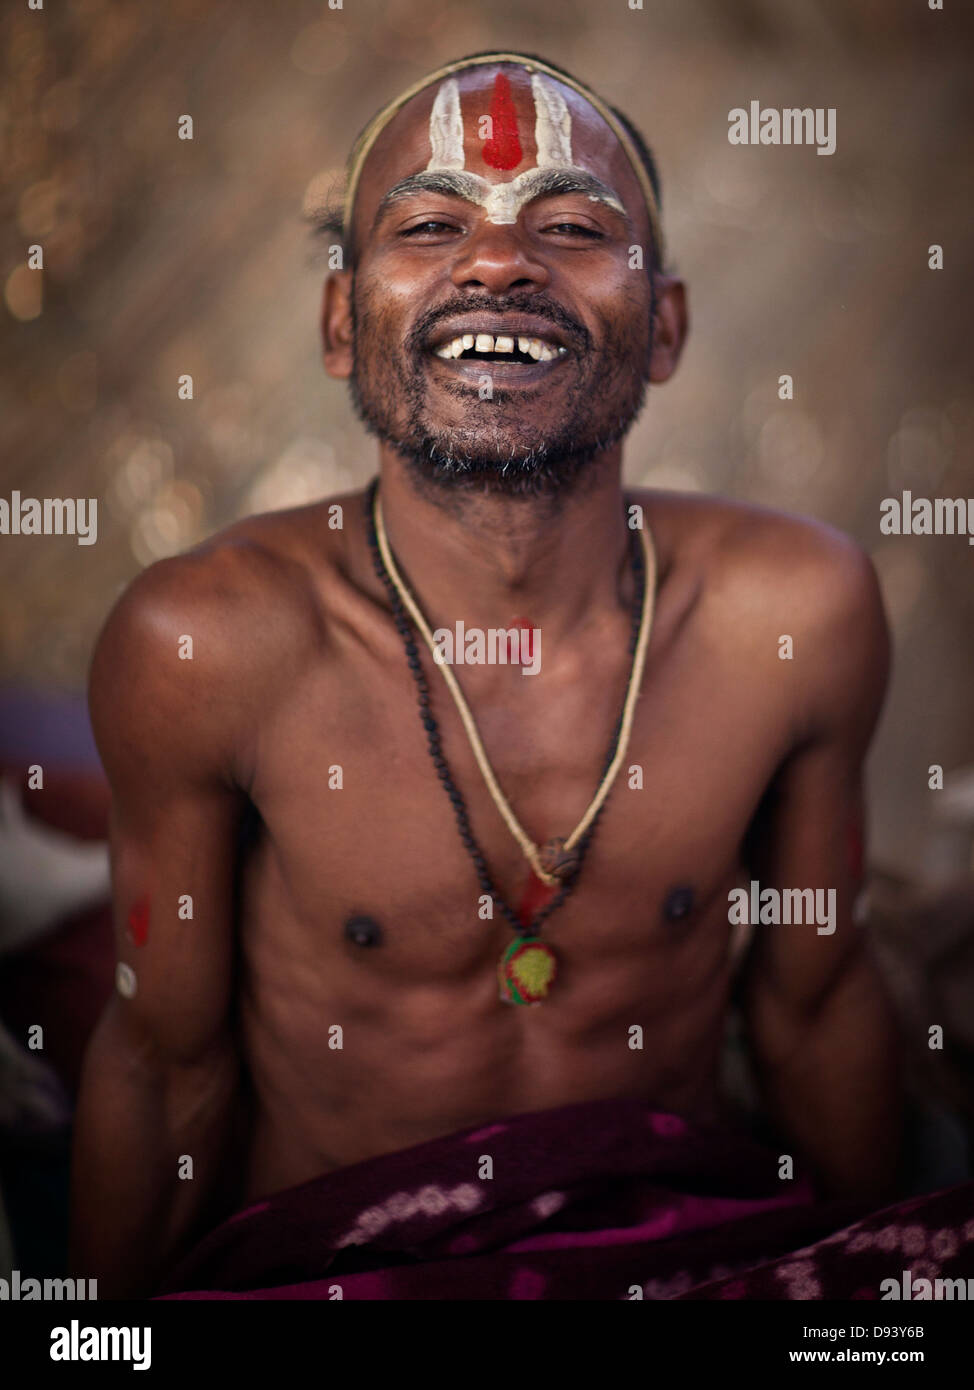 Portrait of a holy man at the Kumbh Mela 2013 in Allahabad, India Stock Photo